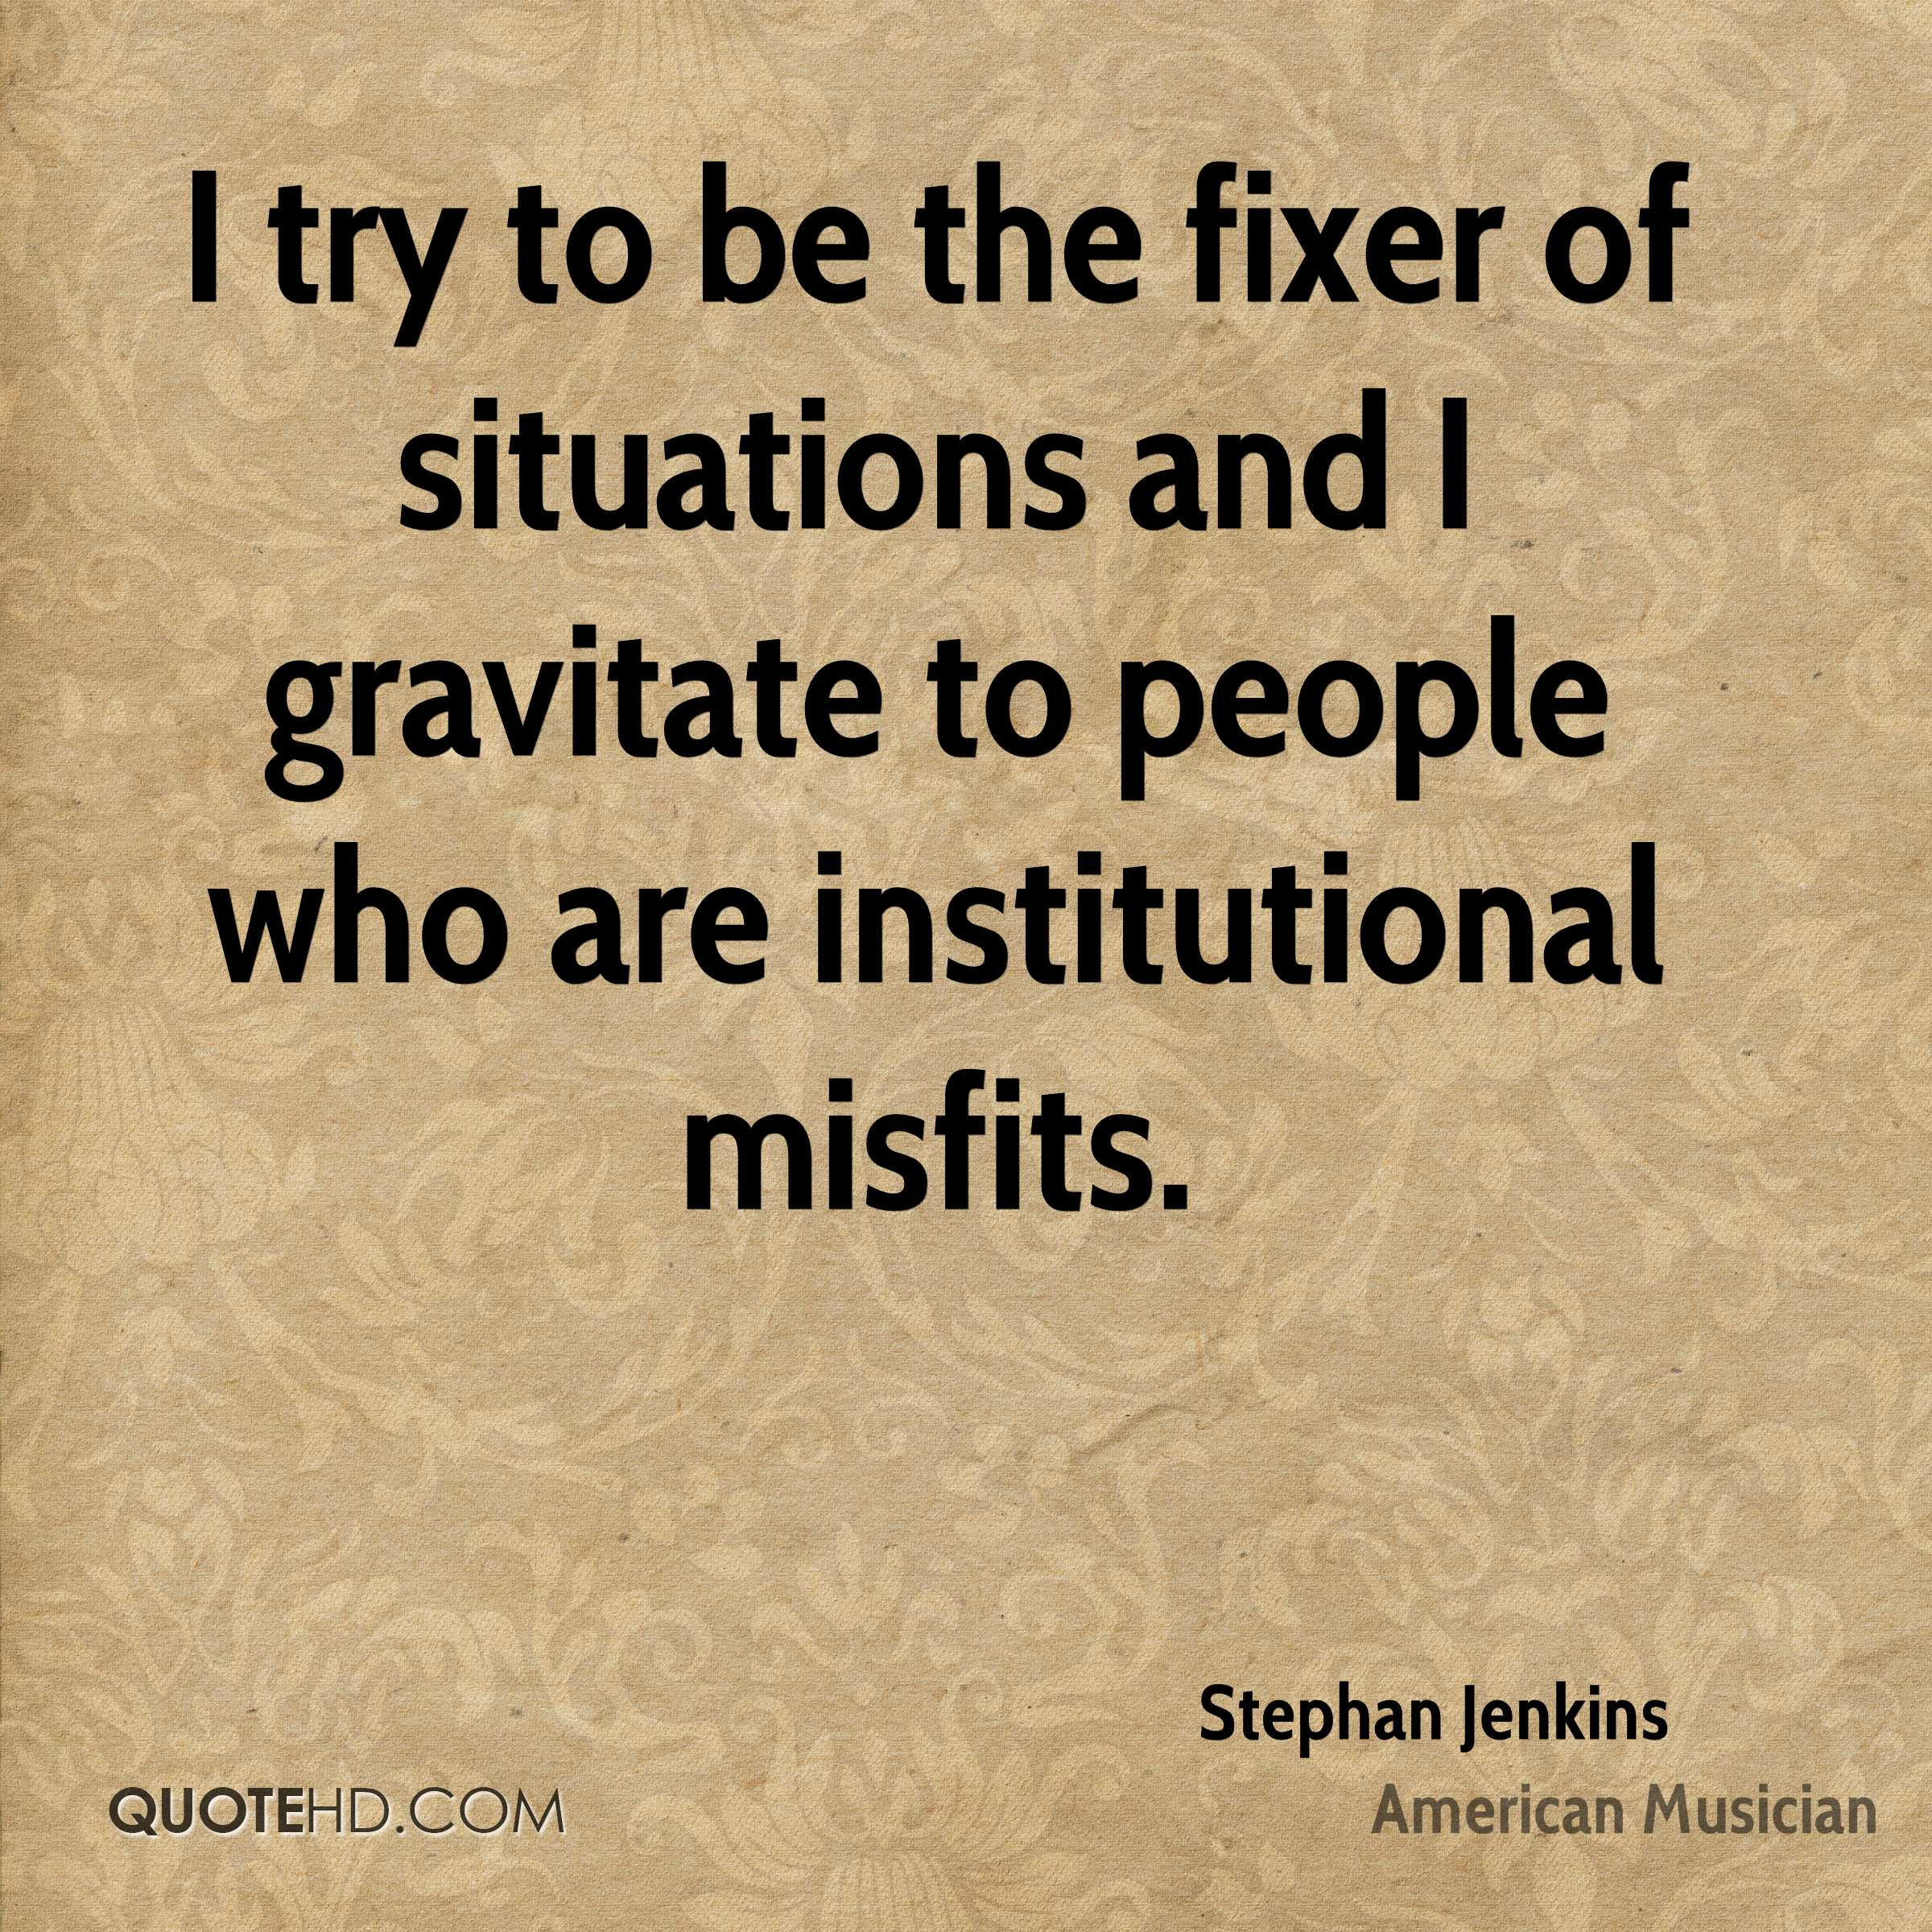 I try to be the fixer of situations and I gravitate to people who are institutional misfits.